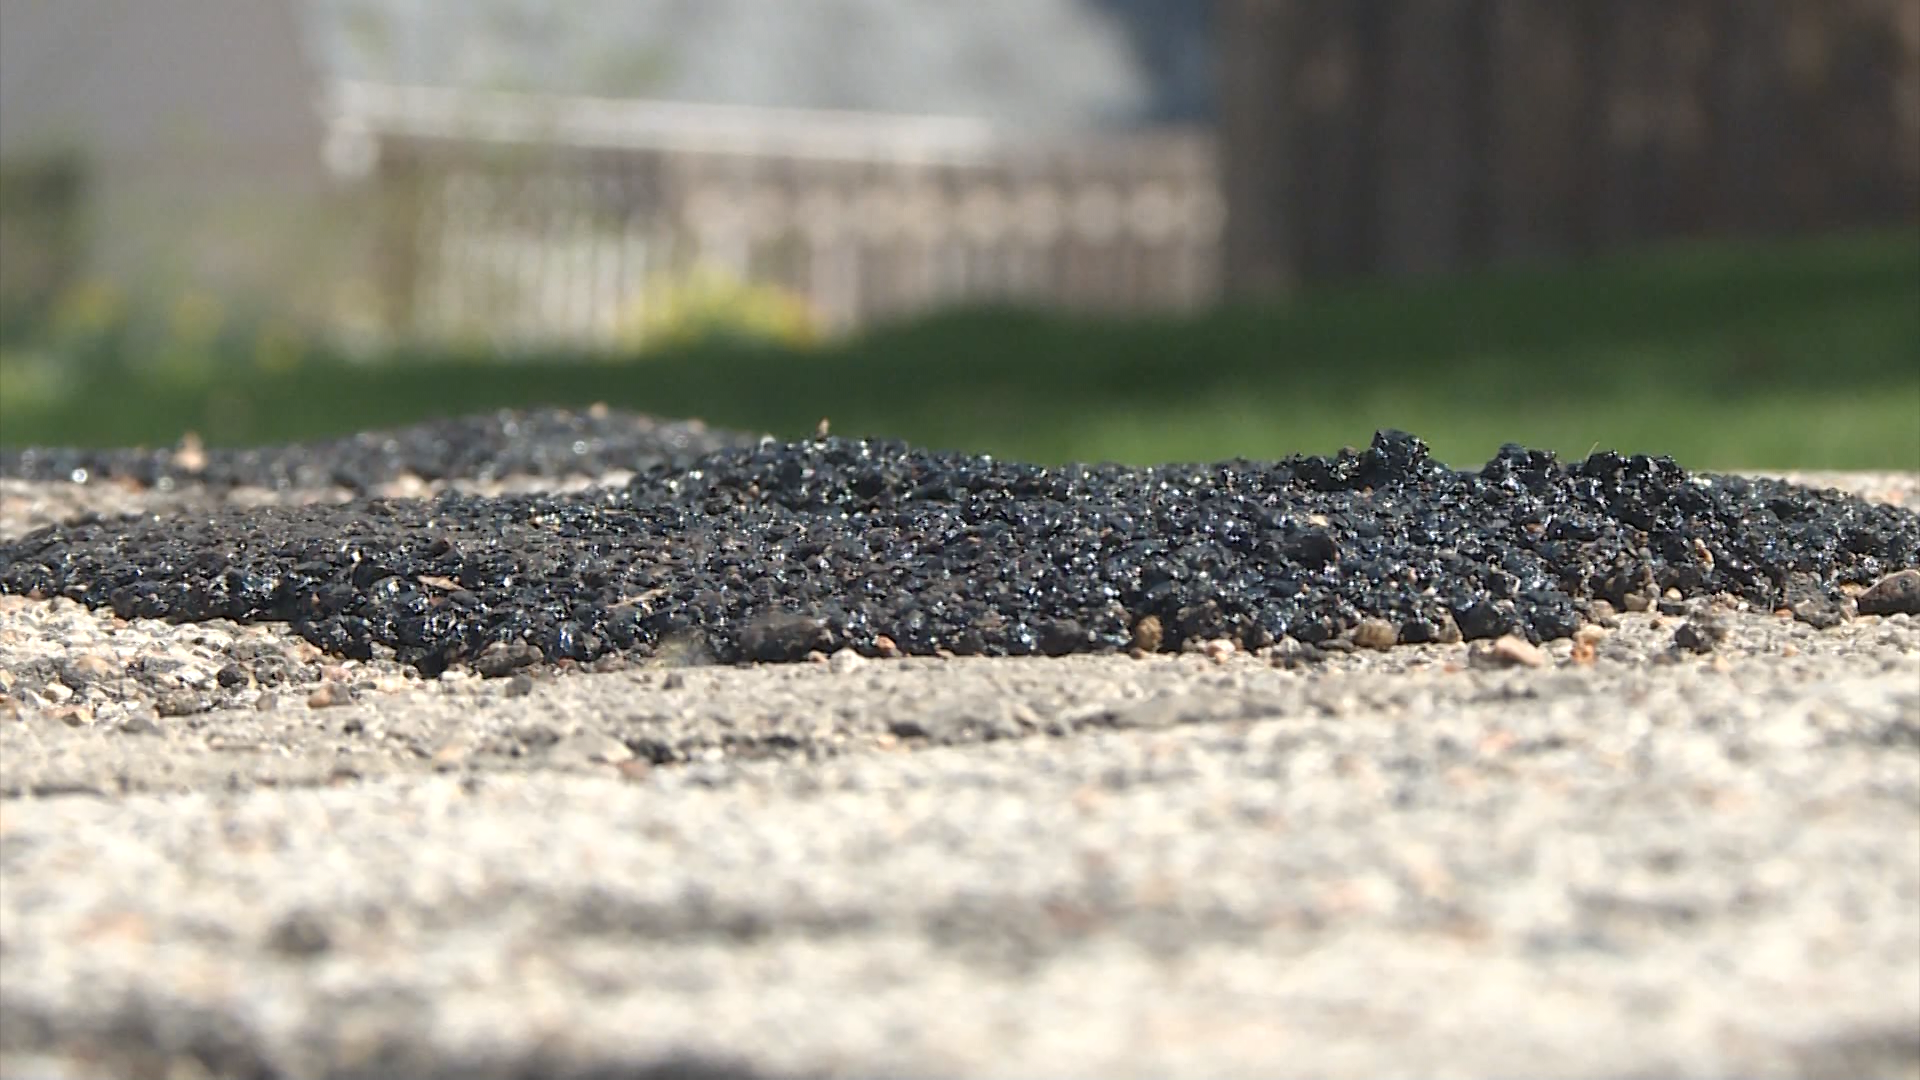 Stothert vetoes new plan to improve streets